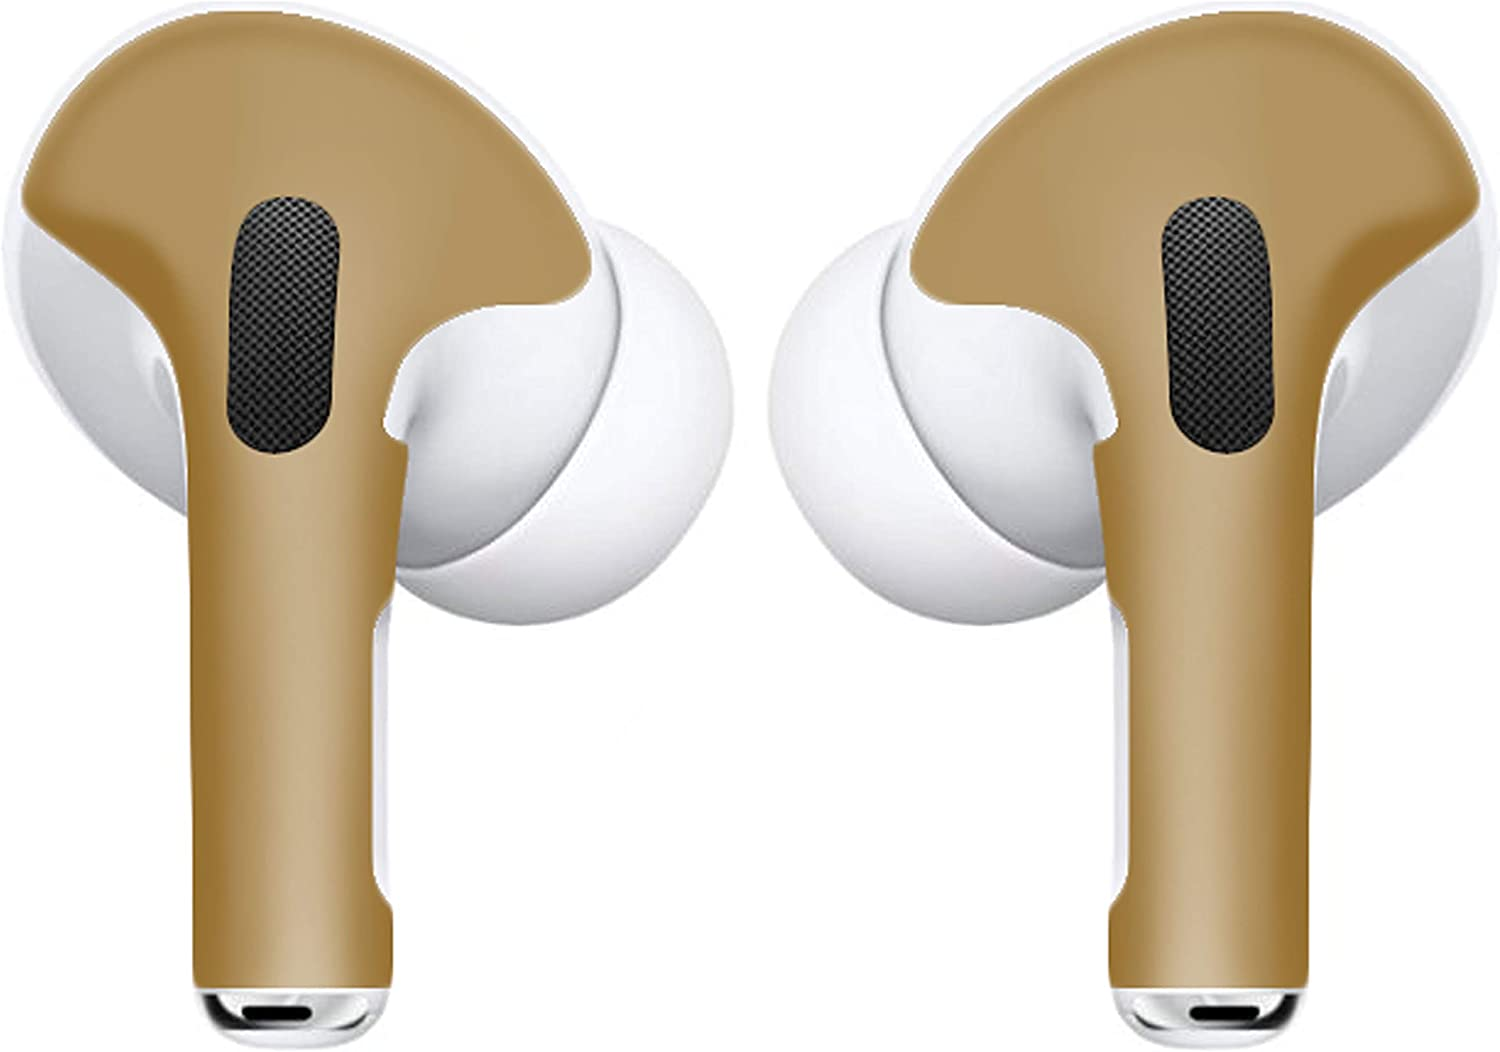 APSkin Skins for Apple AirPod Pro – Vinyl Protective Wraps Stickers Cover Earpods – Air Pods & Ear Pod Compatible Decal for Protection & Customization – Air Pod Pro Accessories – (Gold)